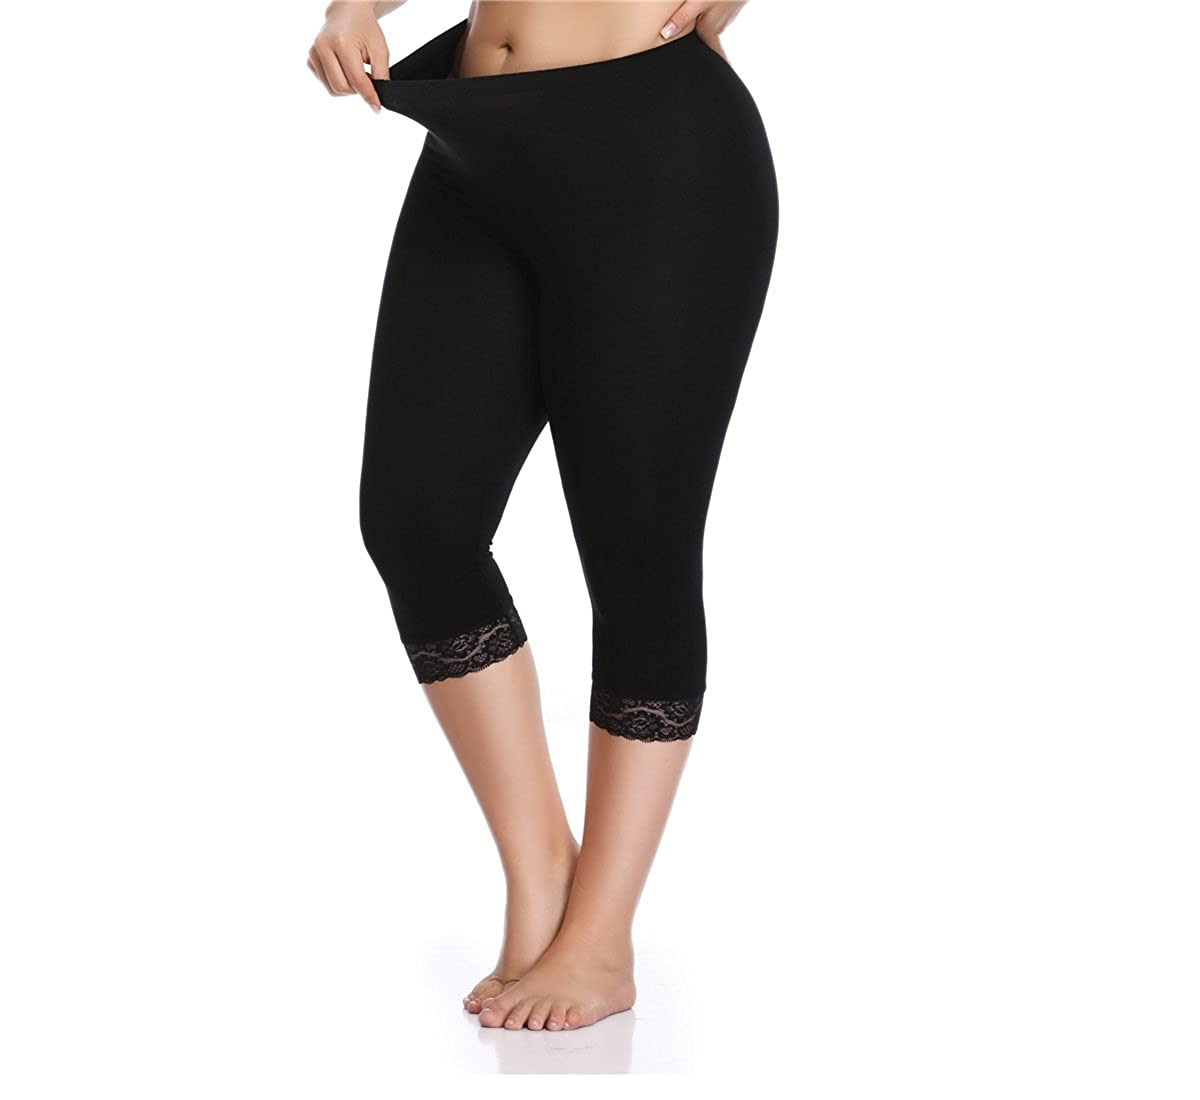 84231b4542ad04 ... soft, breathable, smooth and light weight. Super comfy and stretch PLUS  SIZE capri leggigns with lace trim. These curvy leggings with lace trim ...